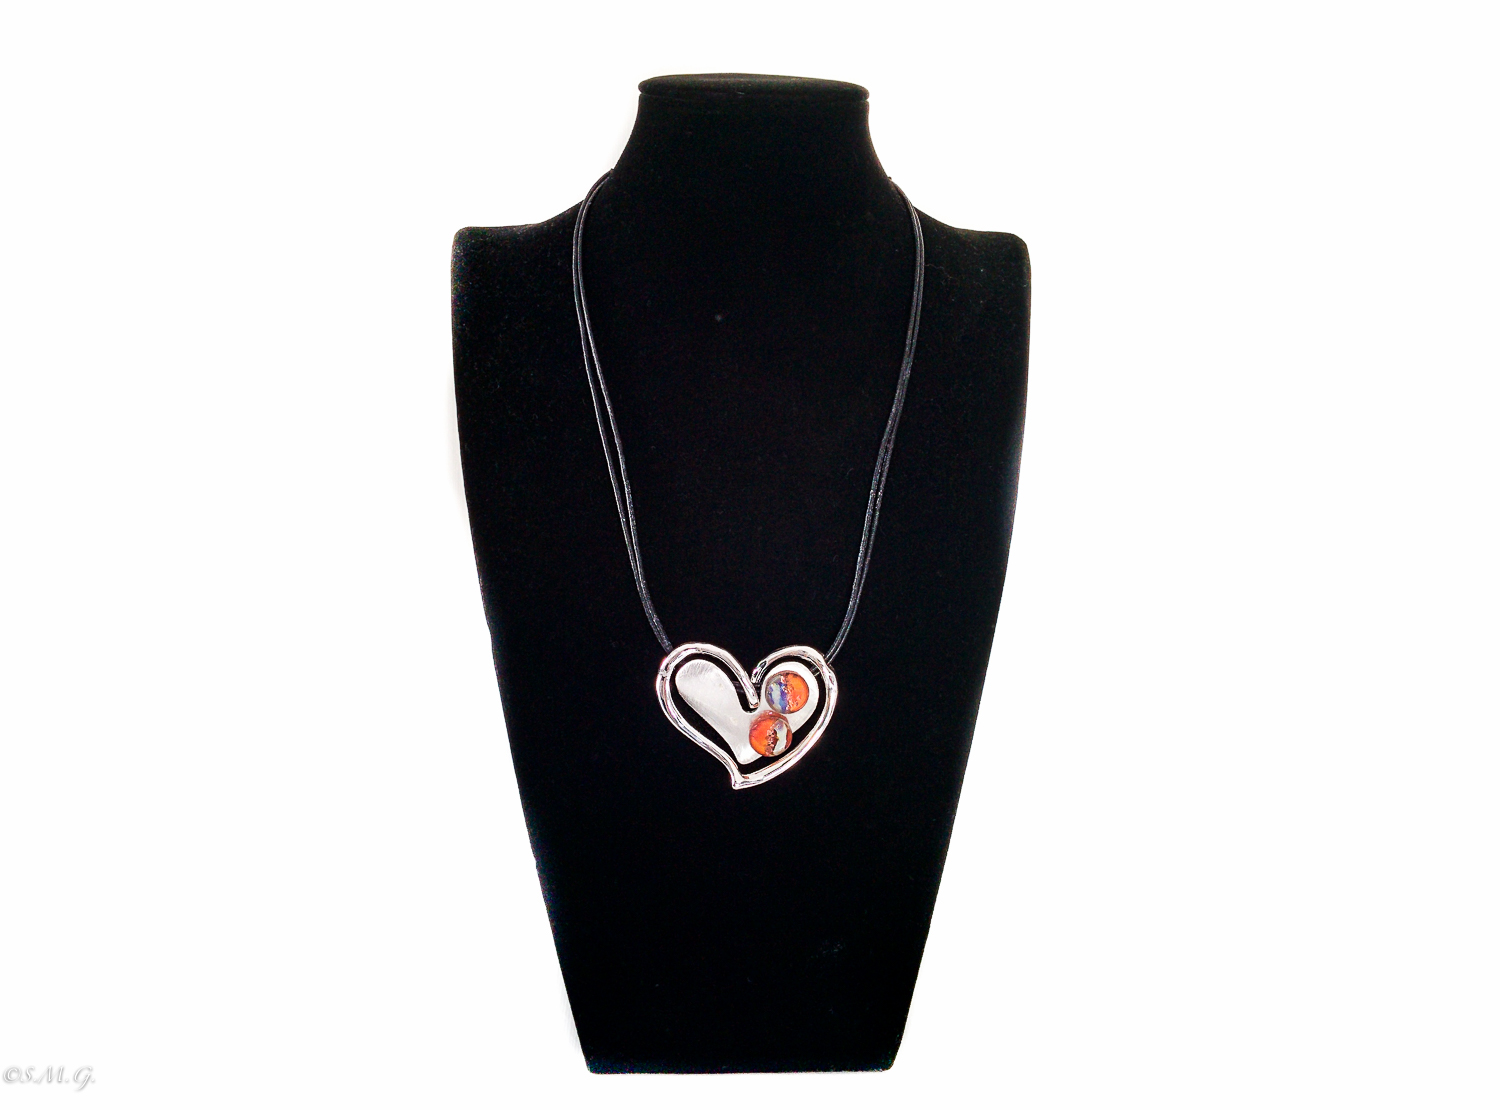 Heart shaped necklace with 2 murano glass beads